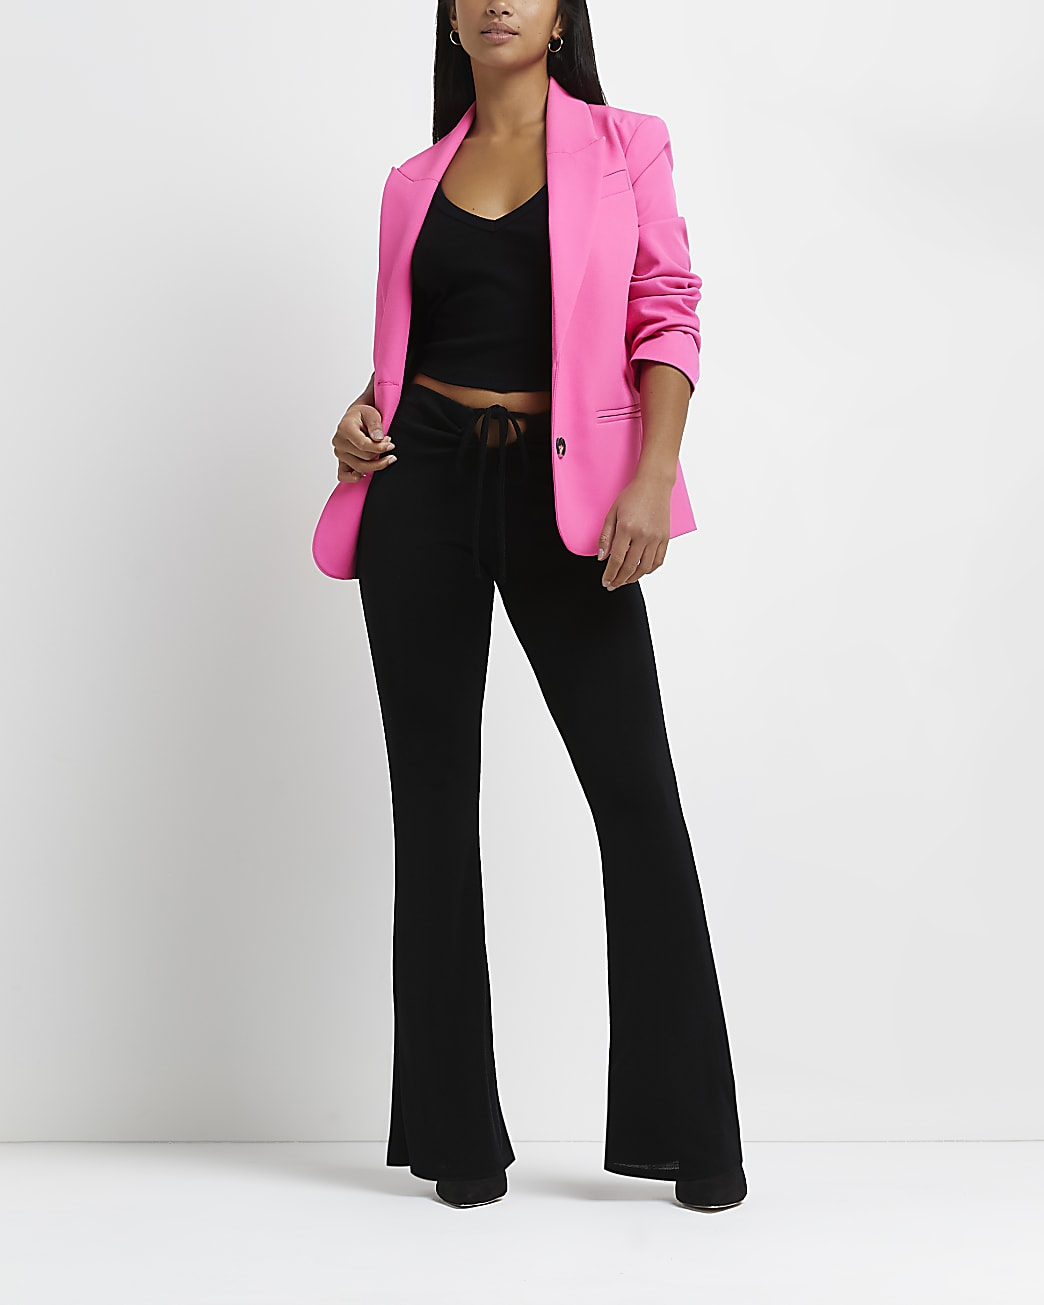 Petite black cut out flared trousers